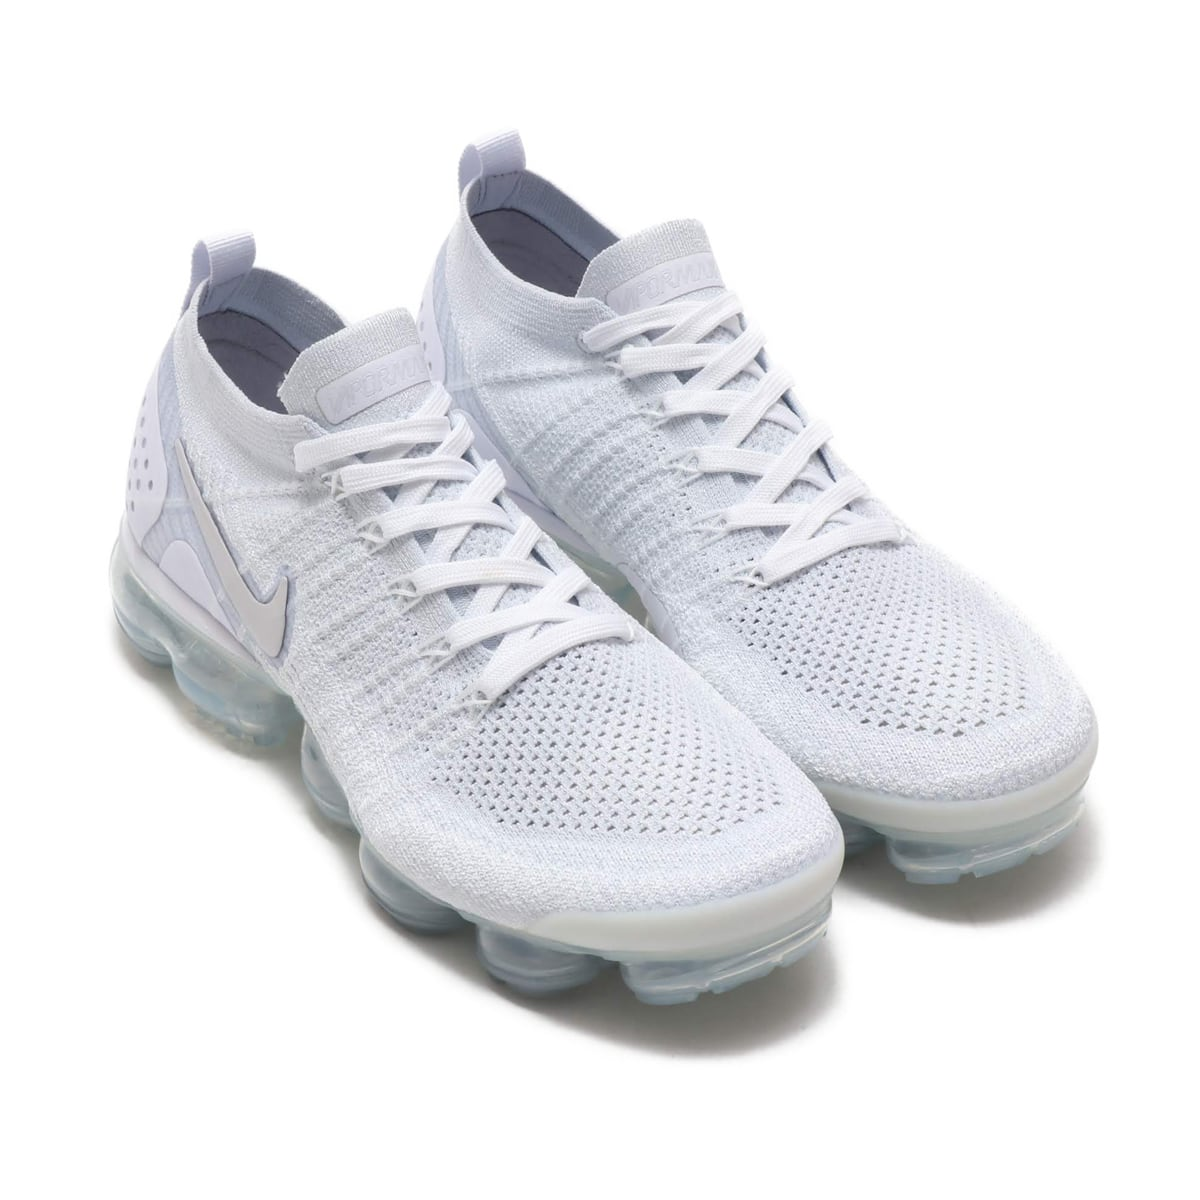 timeless design b9077 6d391 NIKE AIR VAPORMAX FLYKNIT 2 WHITE/WHITE-VAST GREY-FOOTBALL ...